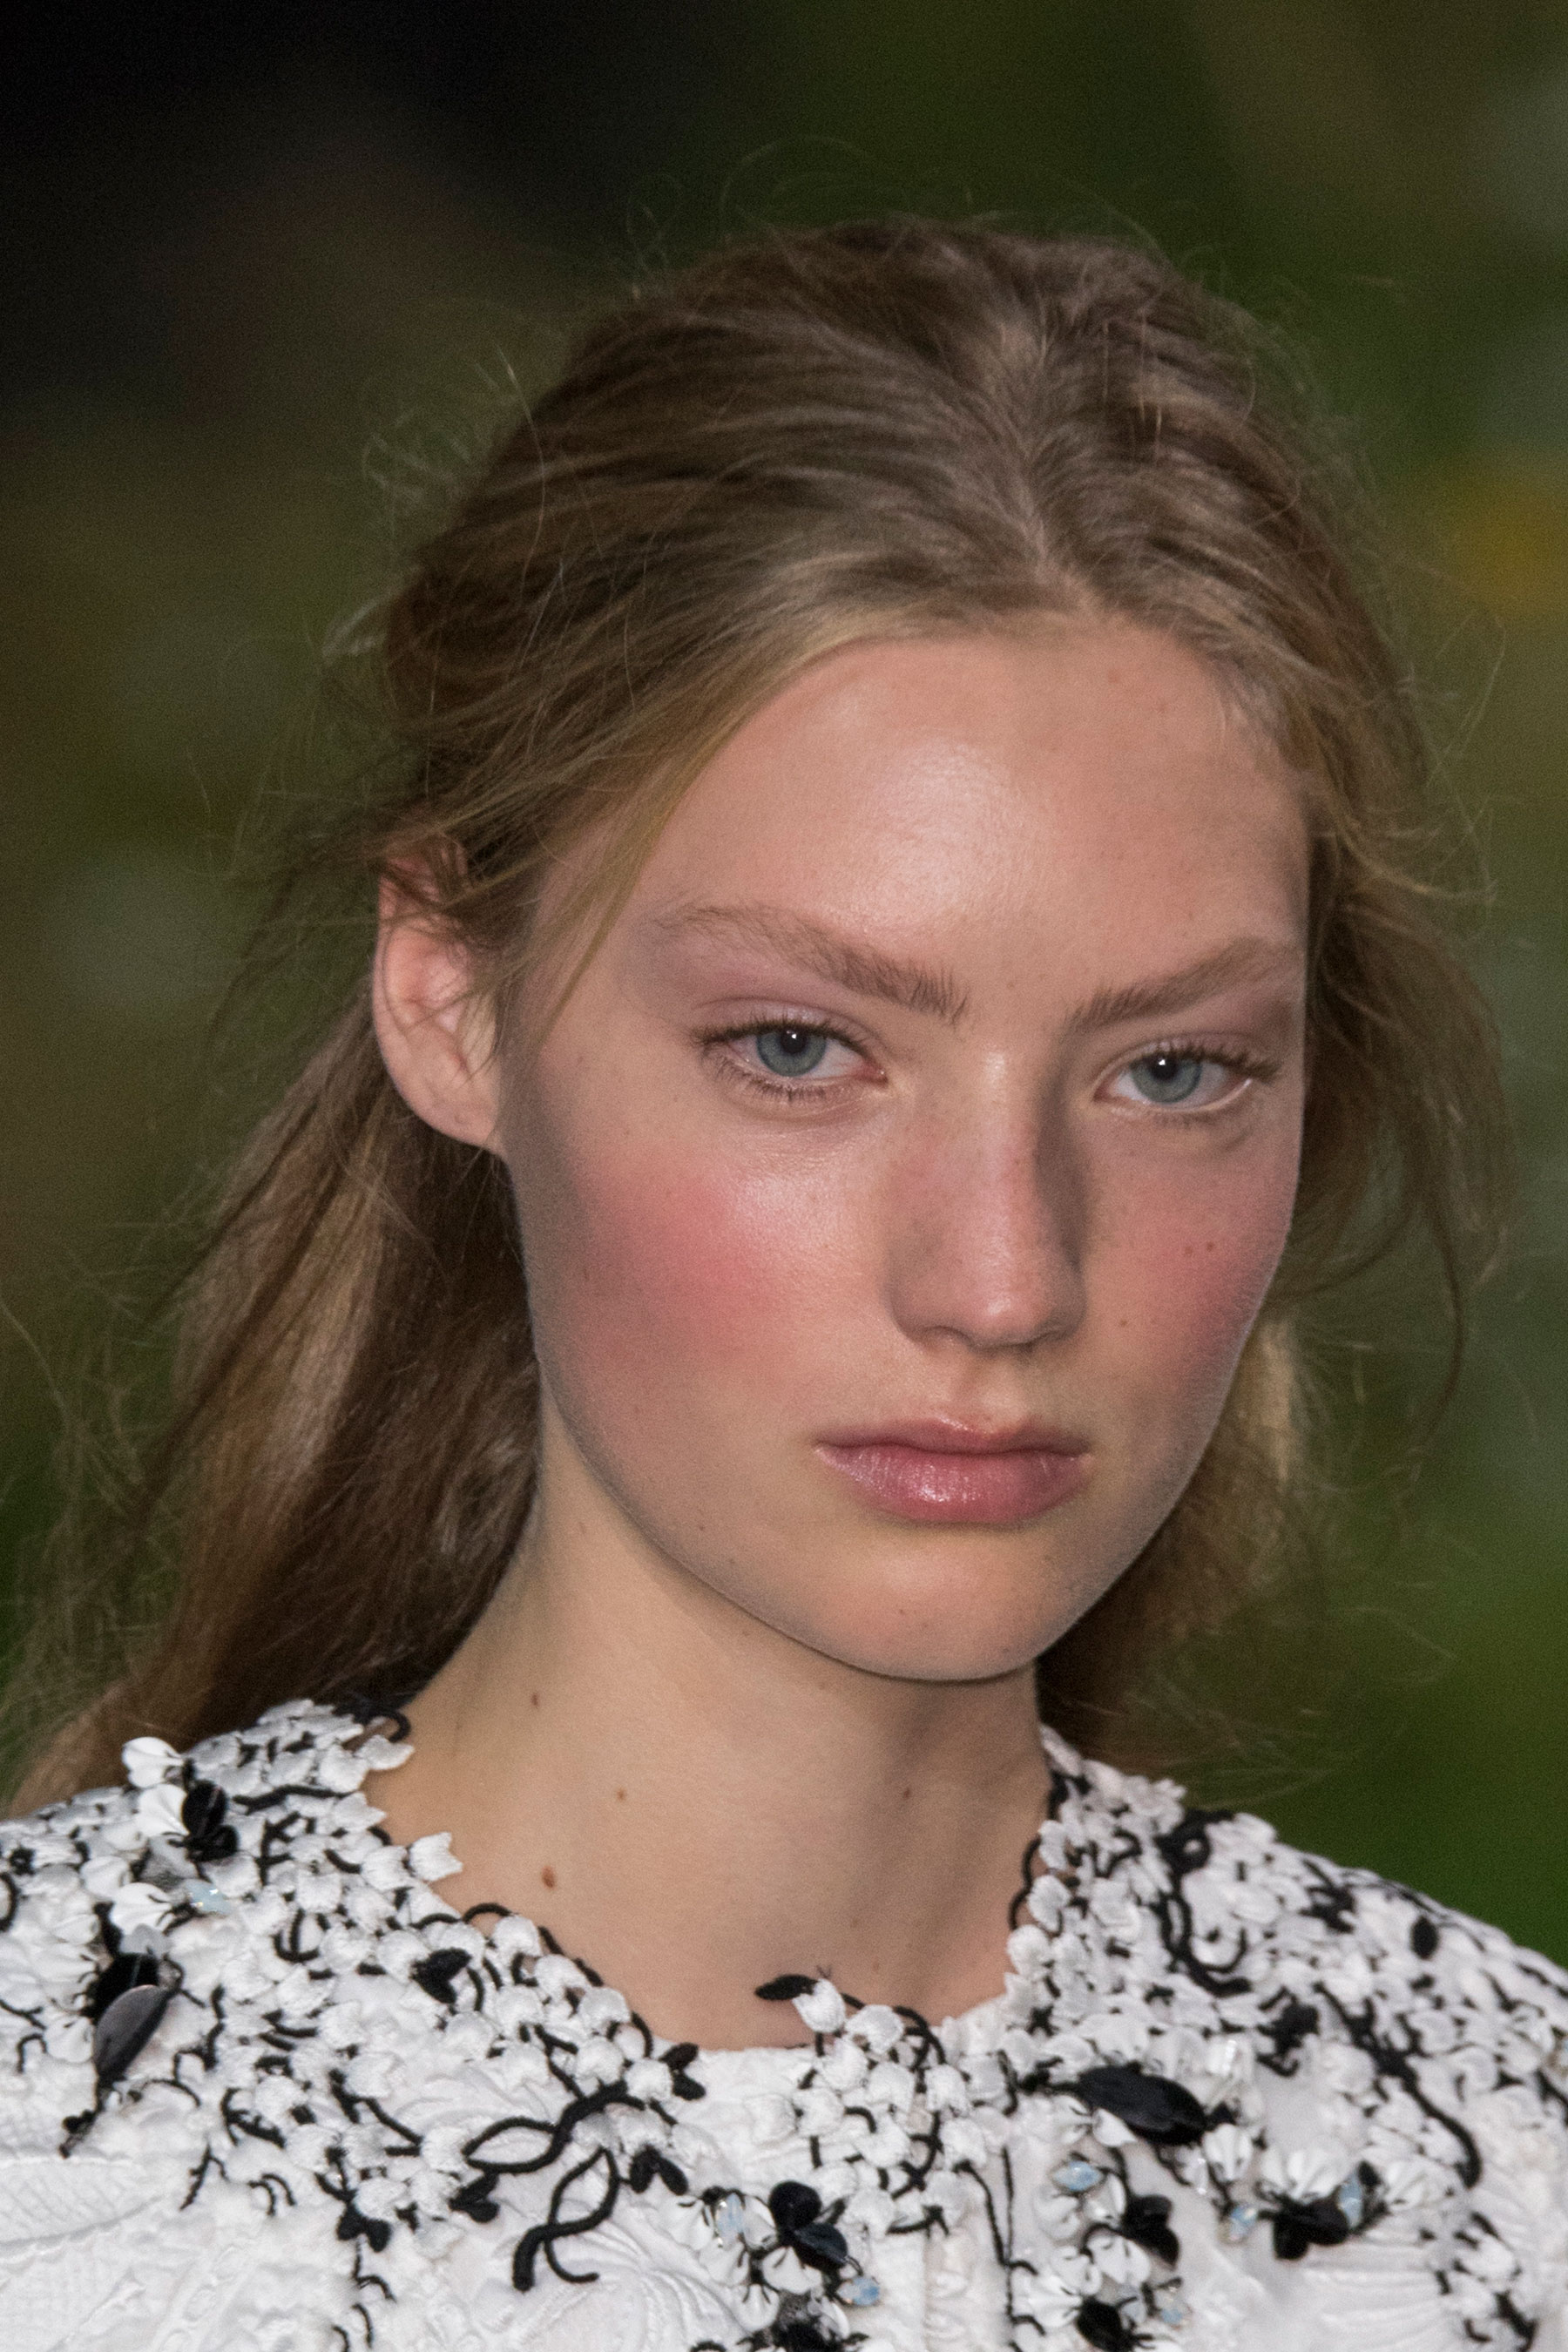 Moncler-Gamme-Rouge-spring-2016-runway-beauty-fashion-show-the-impression-27